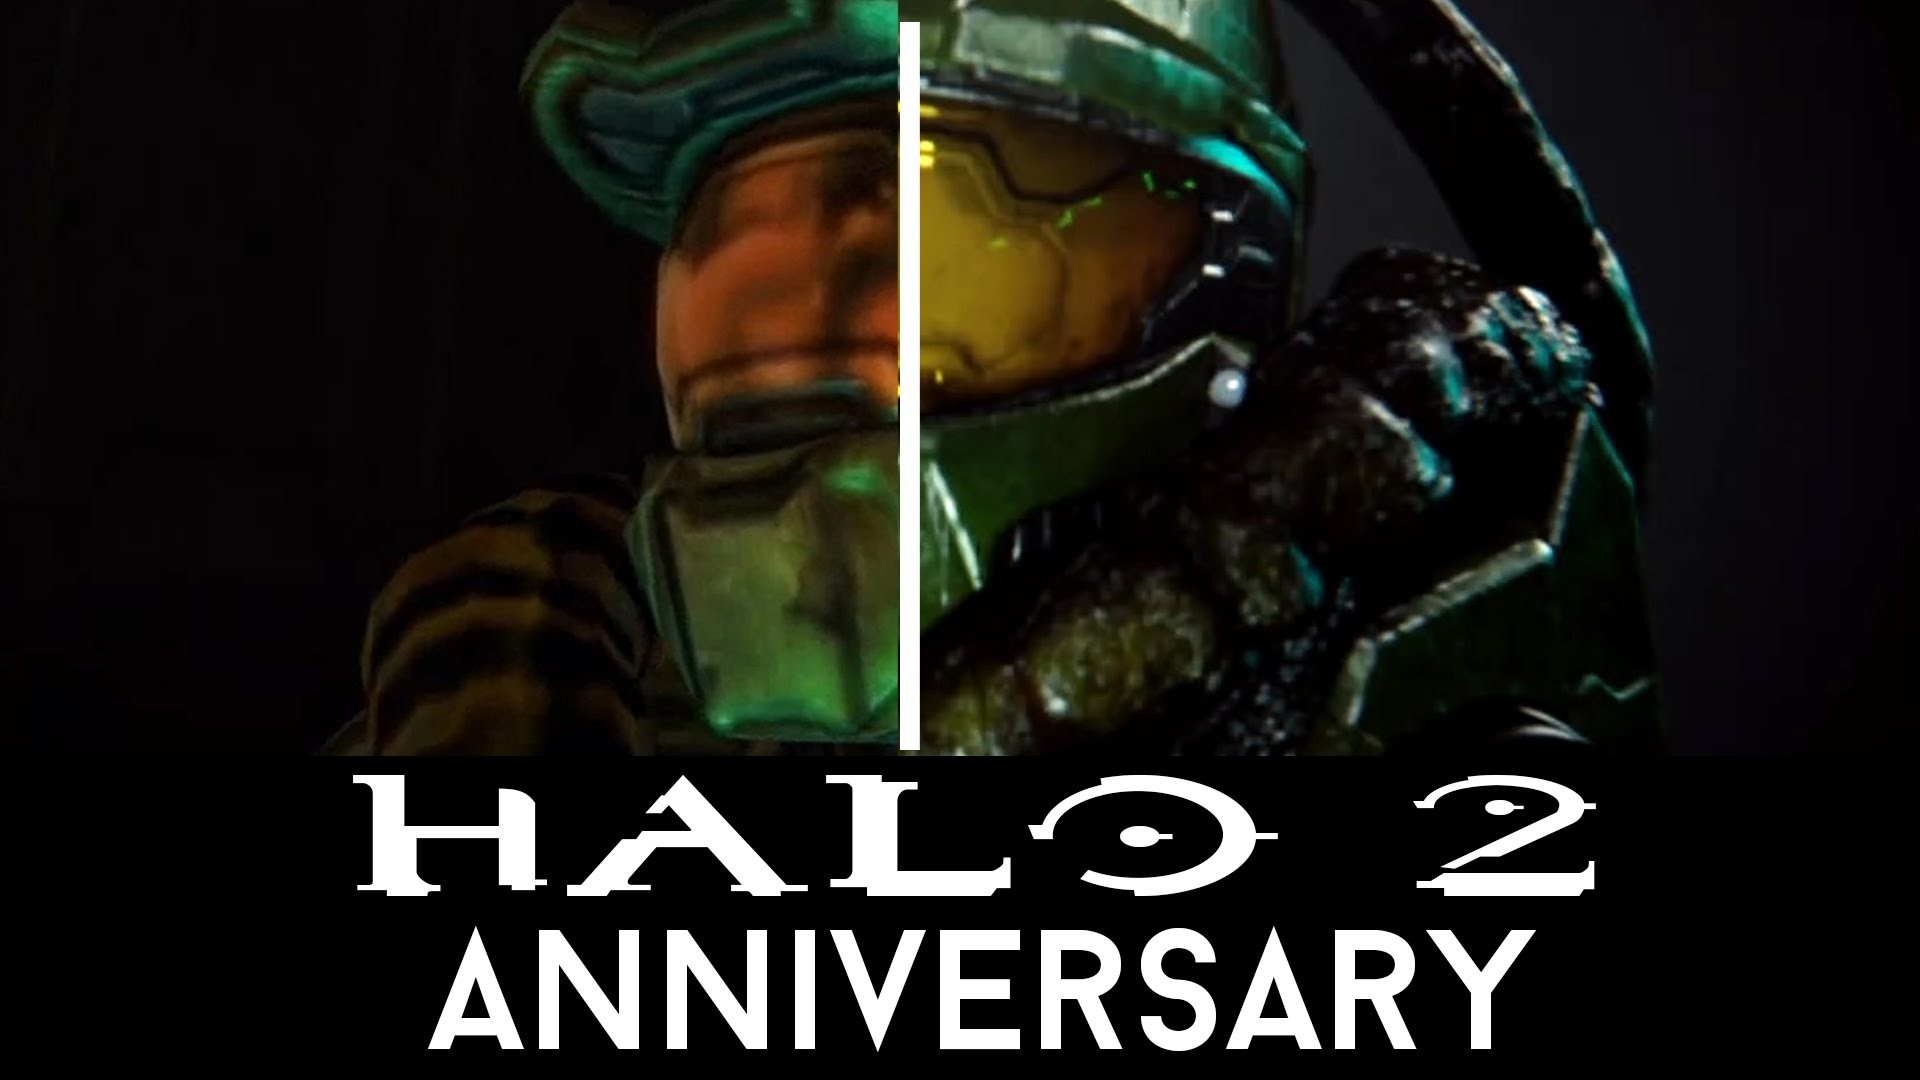 Halo 2 Anniversary Wallpaper HD (92+ images)